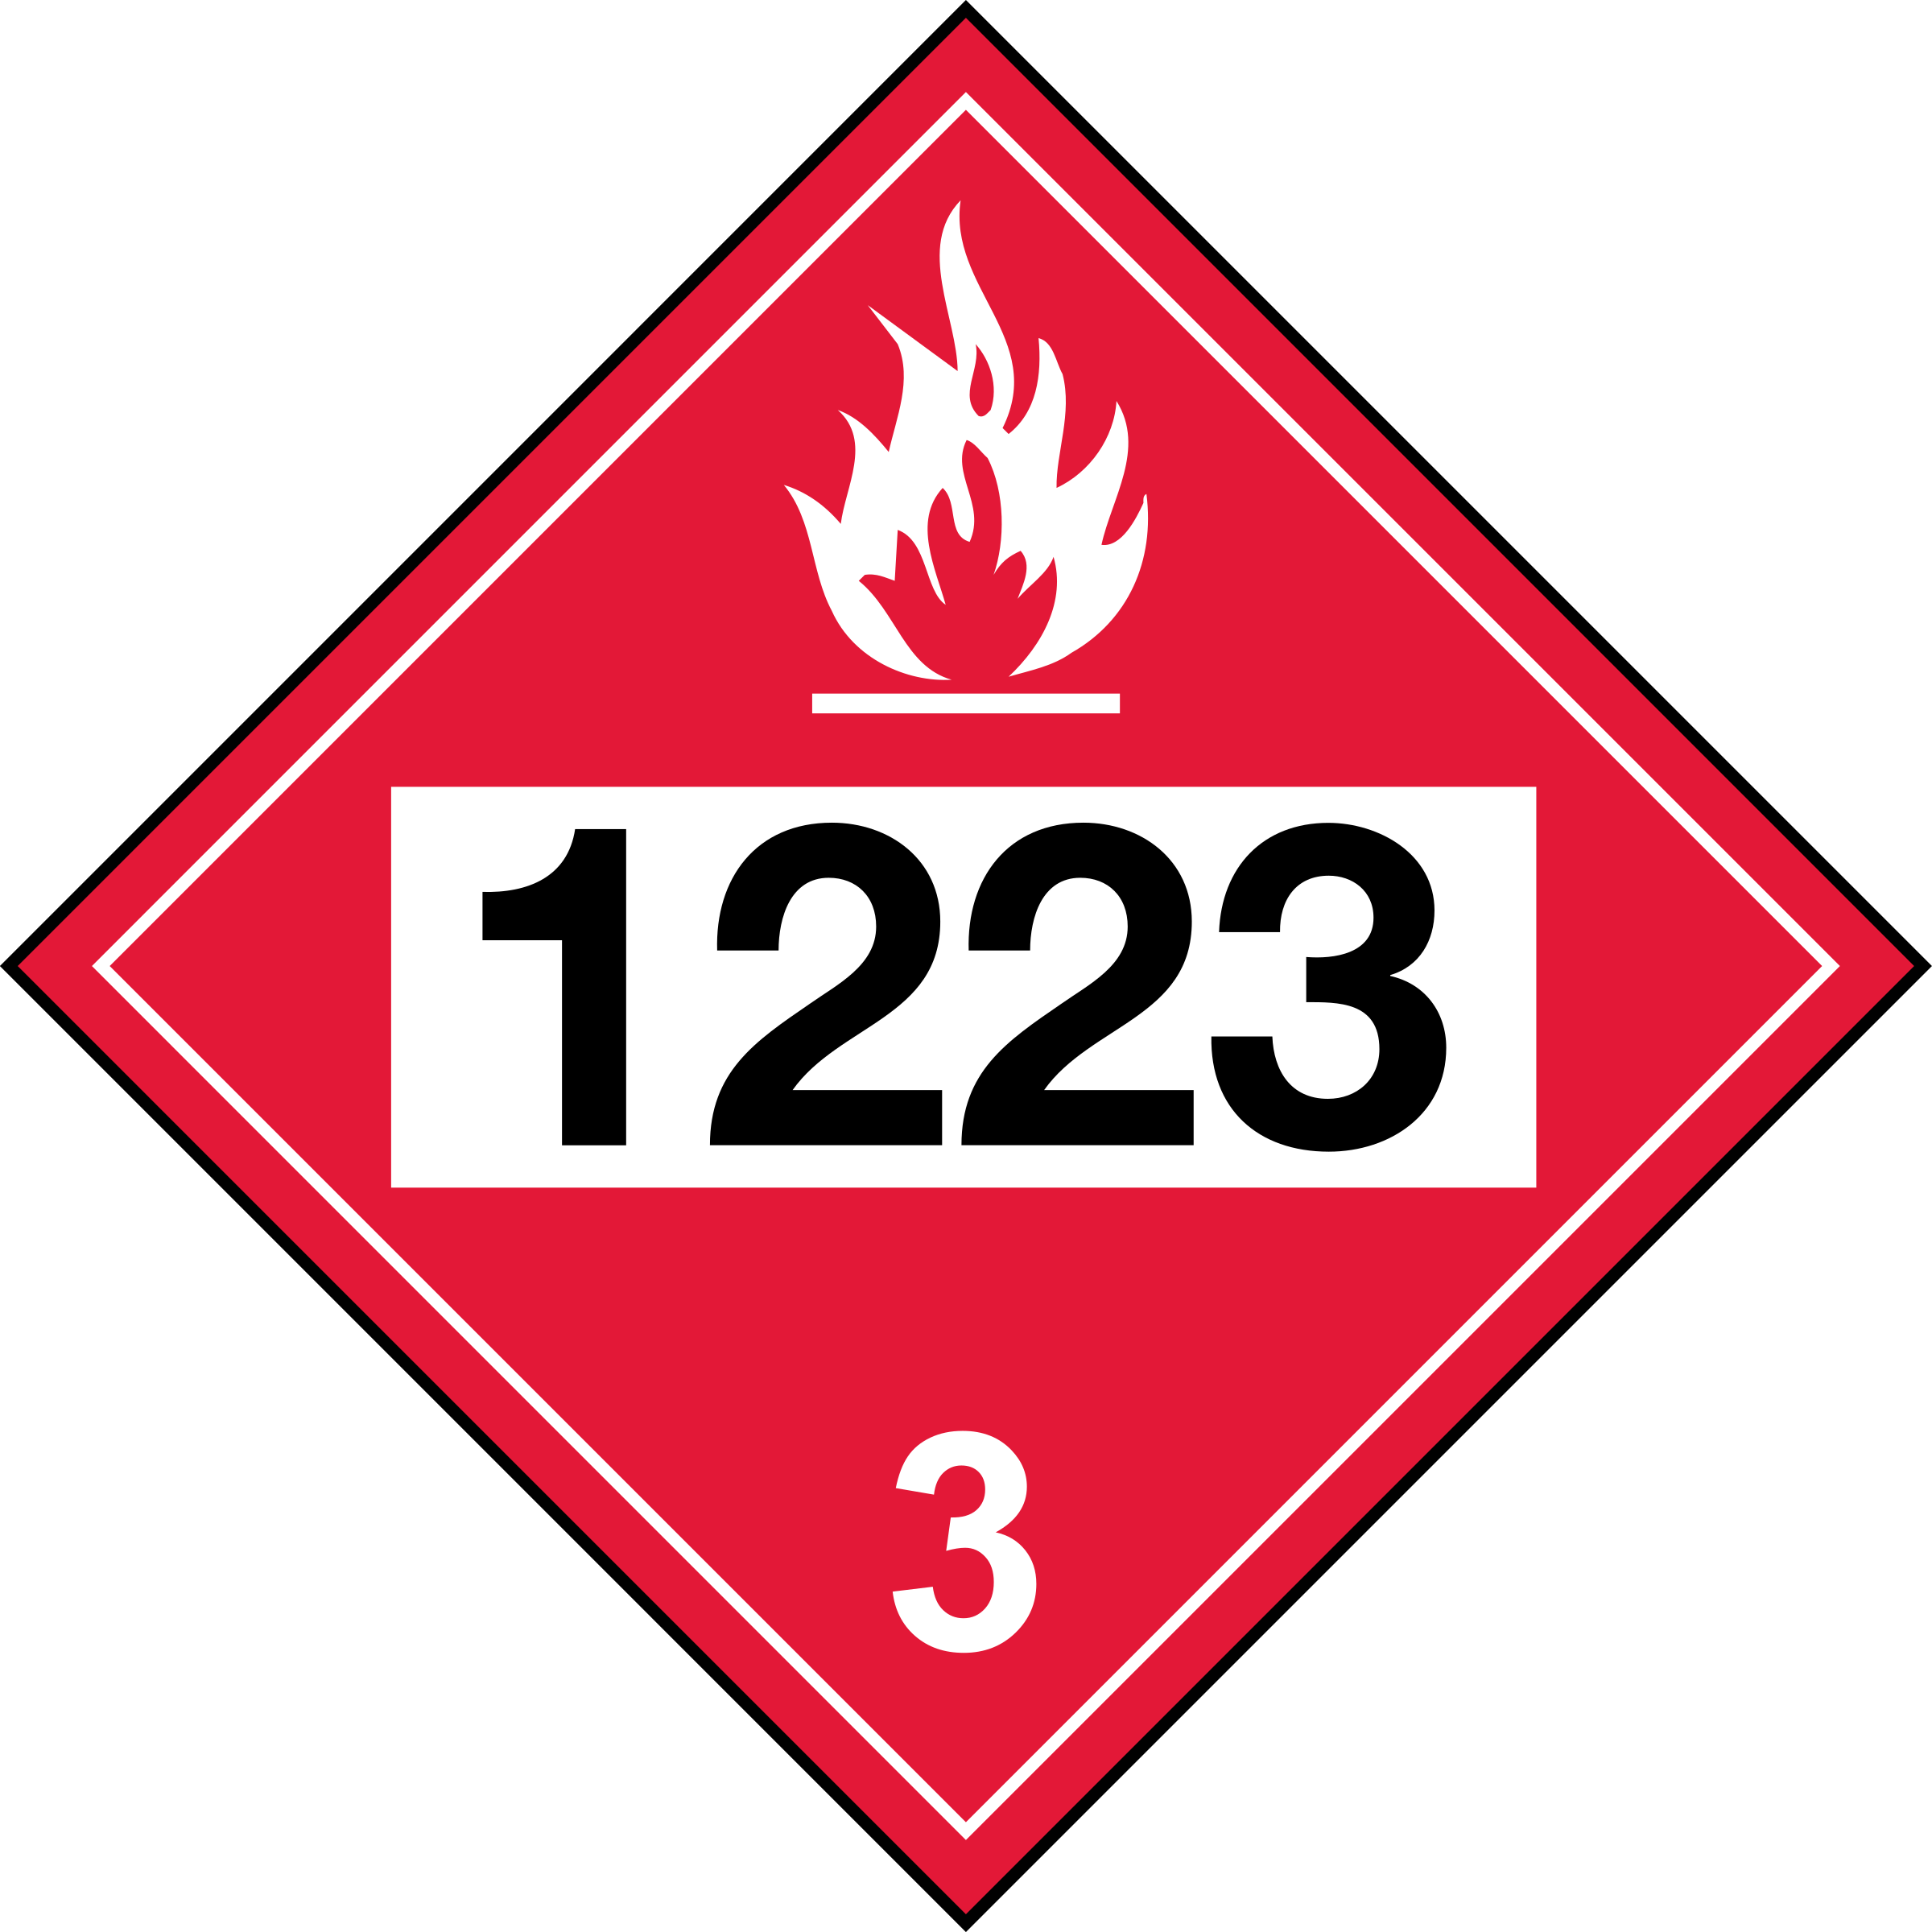 UN 1223 (Kerosene) Flammable Placard by Felix